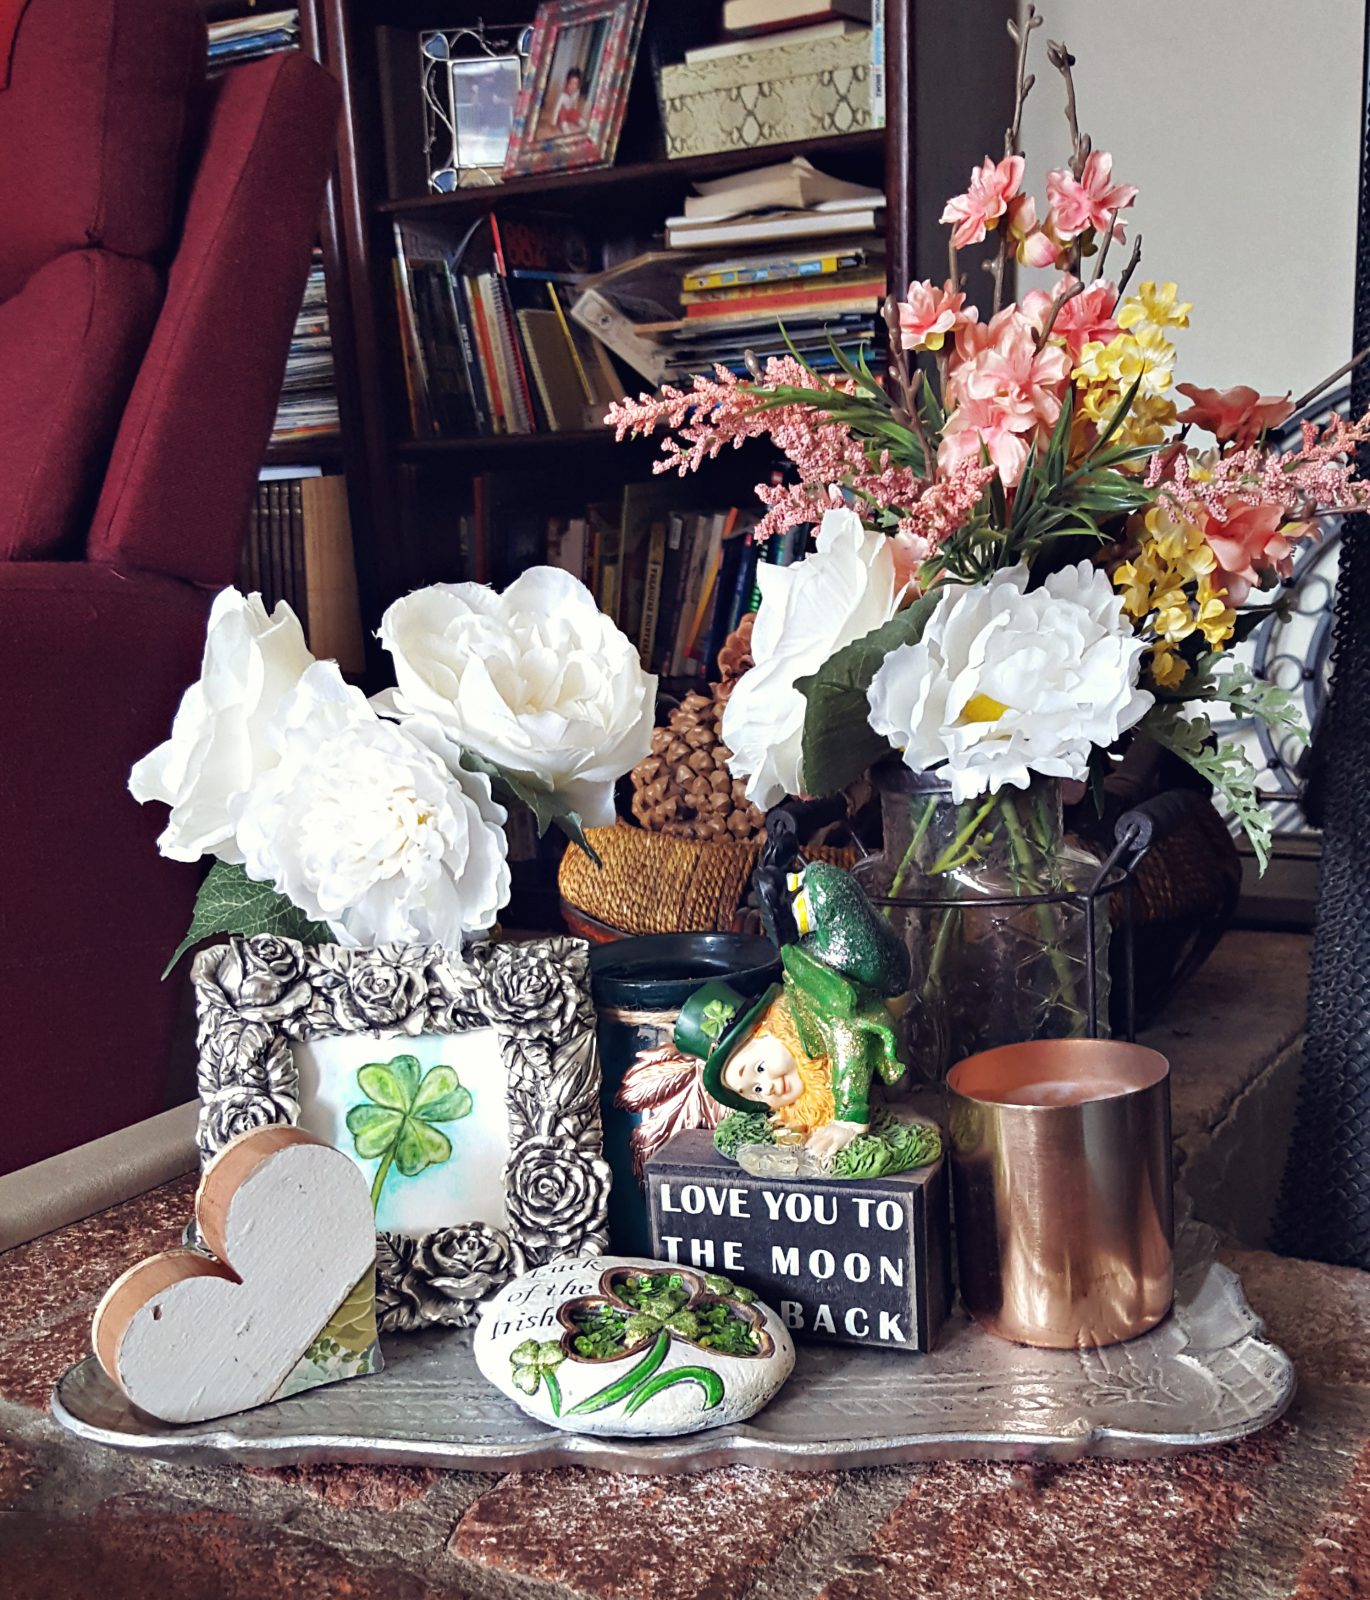 St. Patricks Day display, coping with Arthritis pain with items that make you happy.